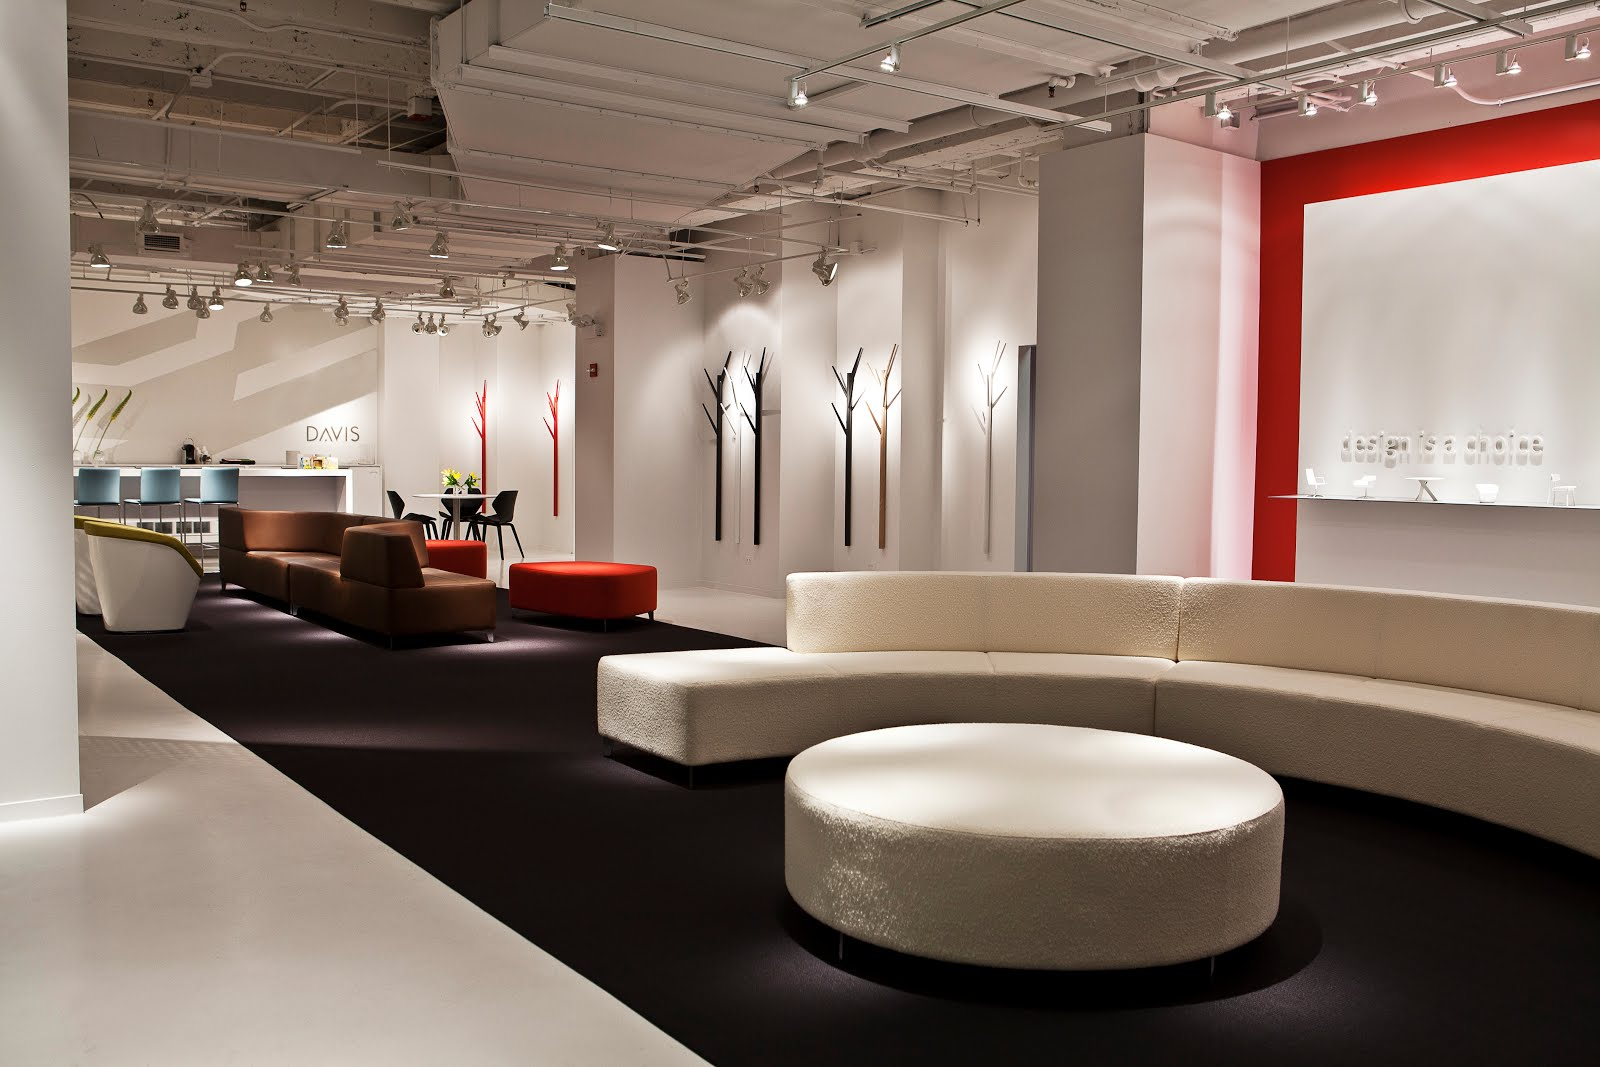 Davis Furniture Showroom Chicago 2011 J Robert Bazemore